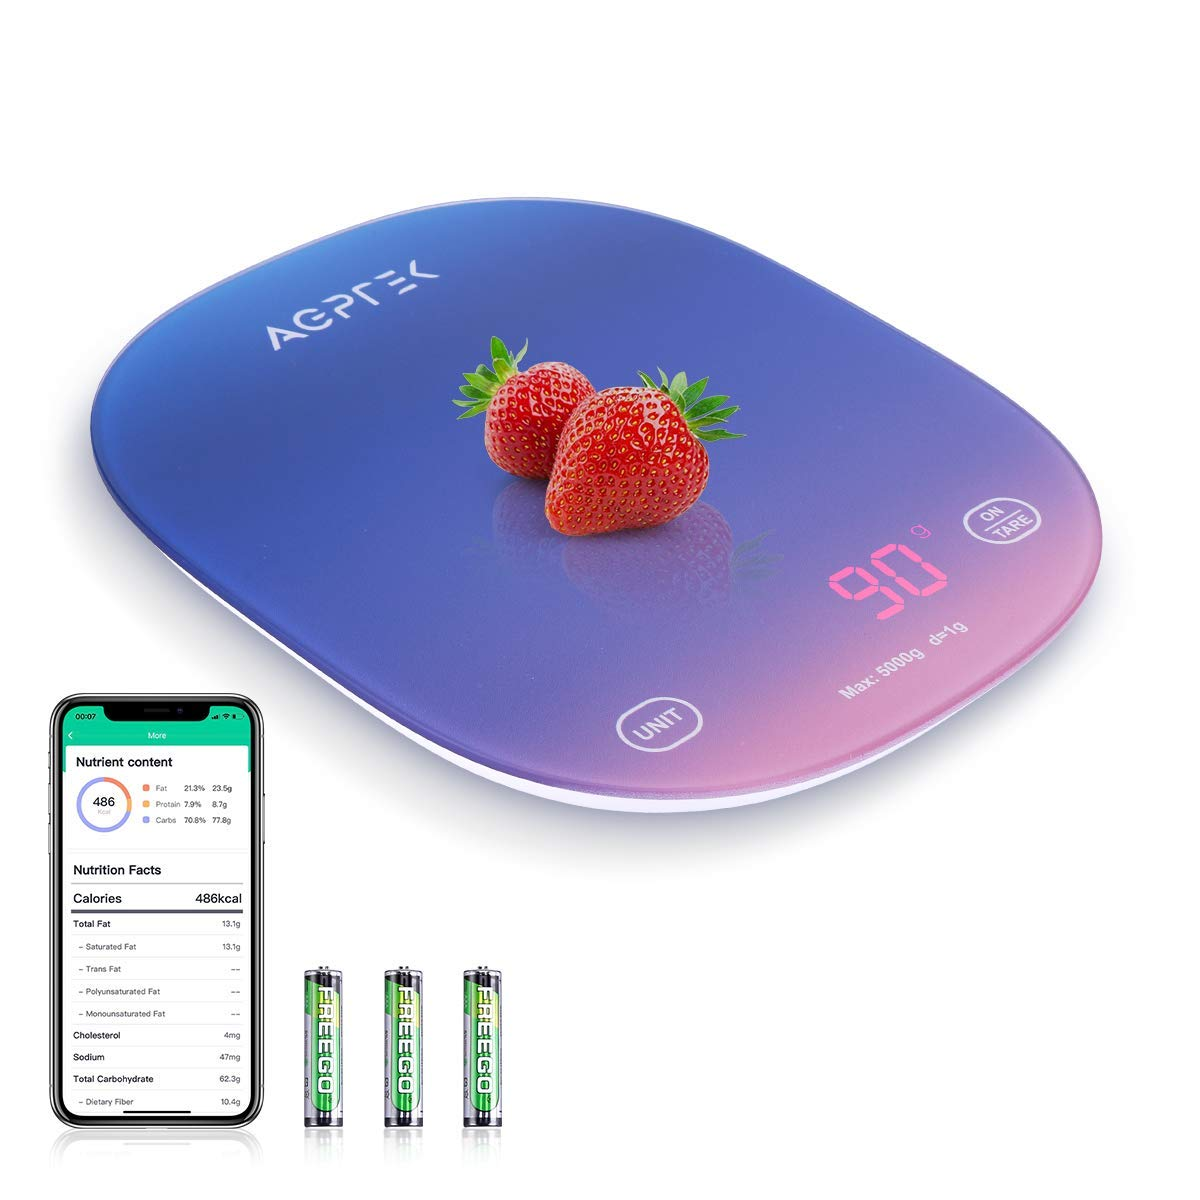 Smart Food Scale with Smartphone App, AGPTEK Digital Kitchen Scale Measures in Grams, Ounces and Pounds, Food Nutritional Calculator for Weight Loss, Baking, Cooking, Coffee, Dark Blue